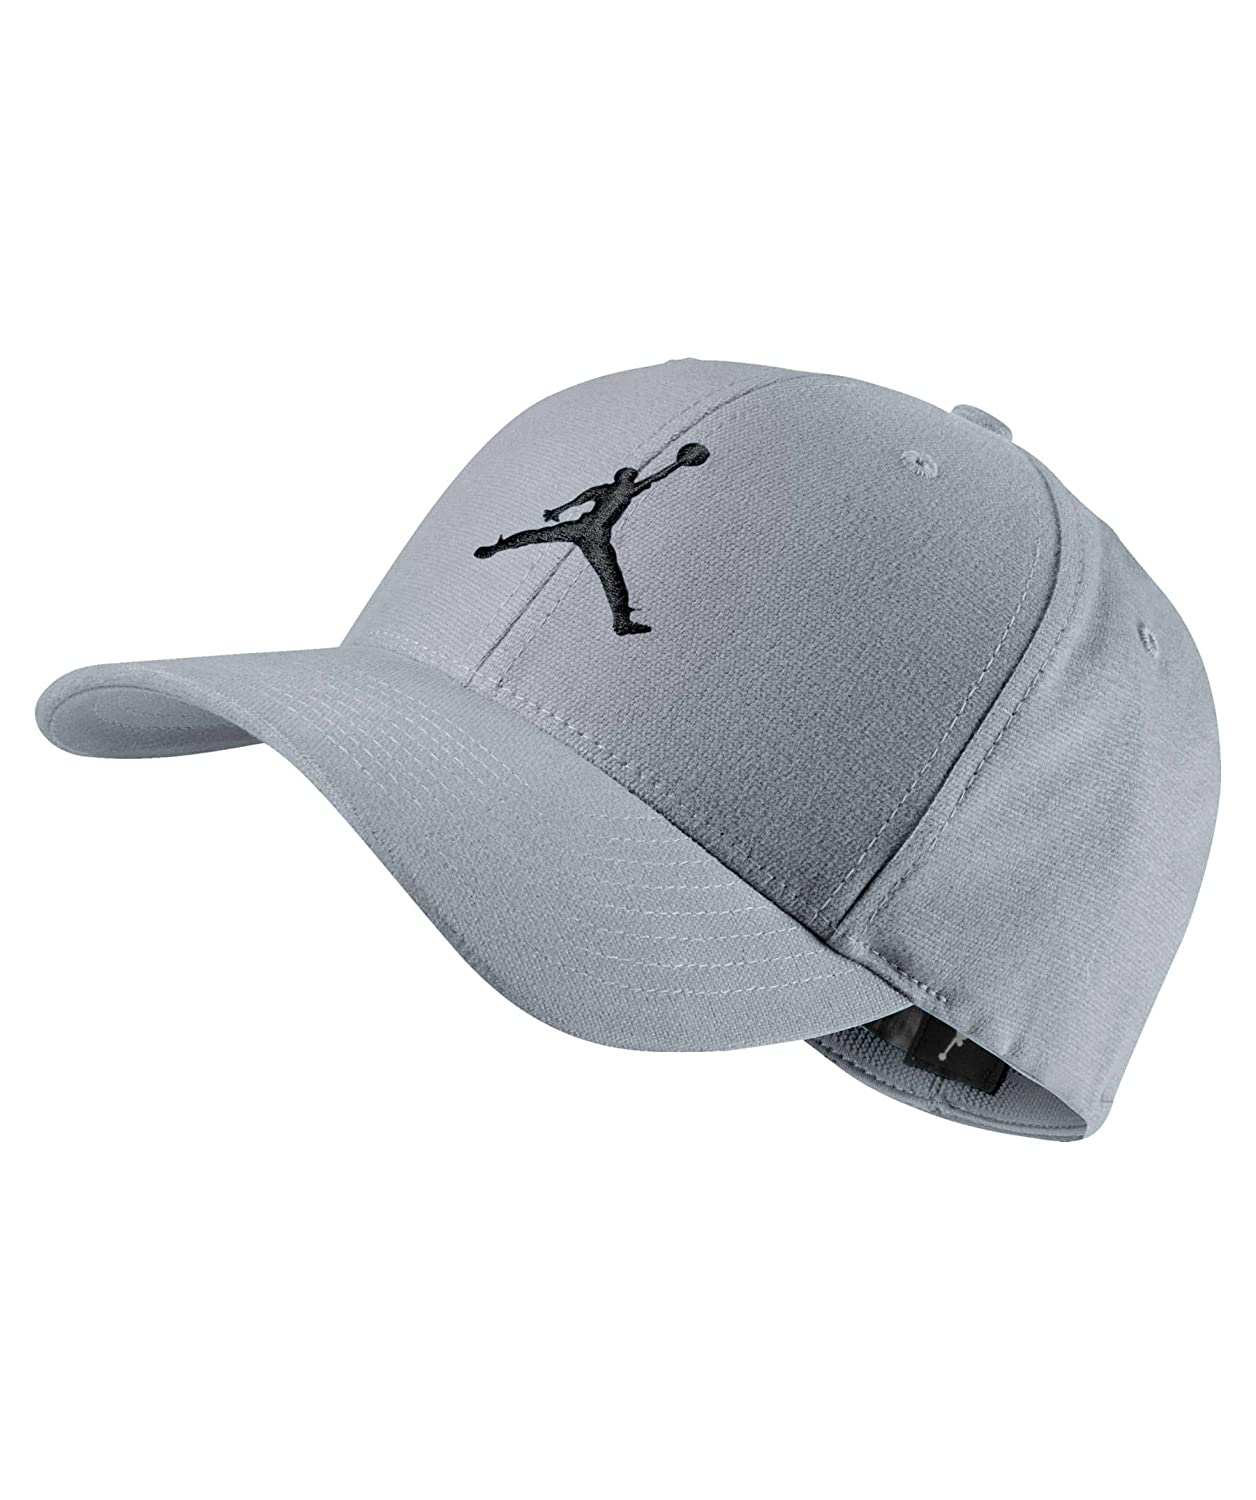 24a69d2f3bf Amazon.com  Jordan Air Jordan Flight Stretch Flexfit Hat (S M